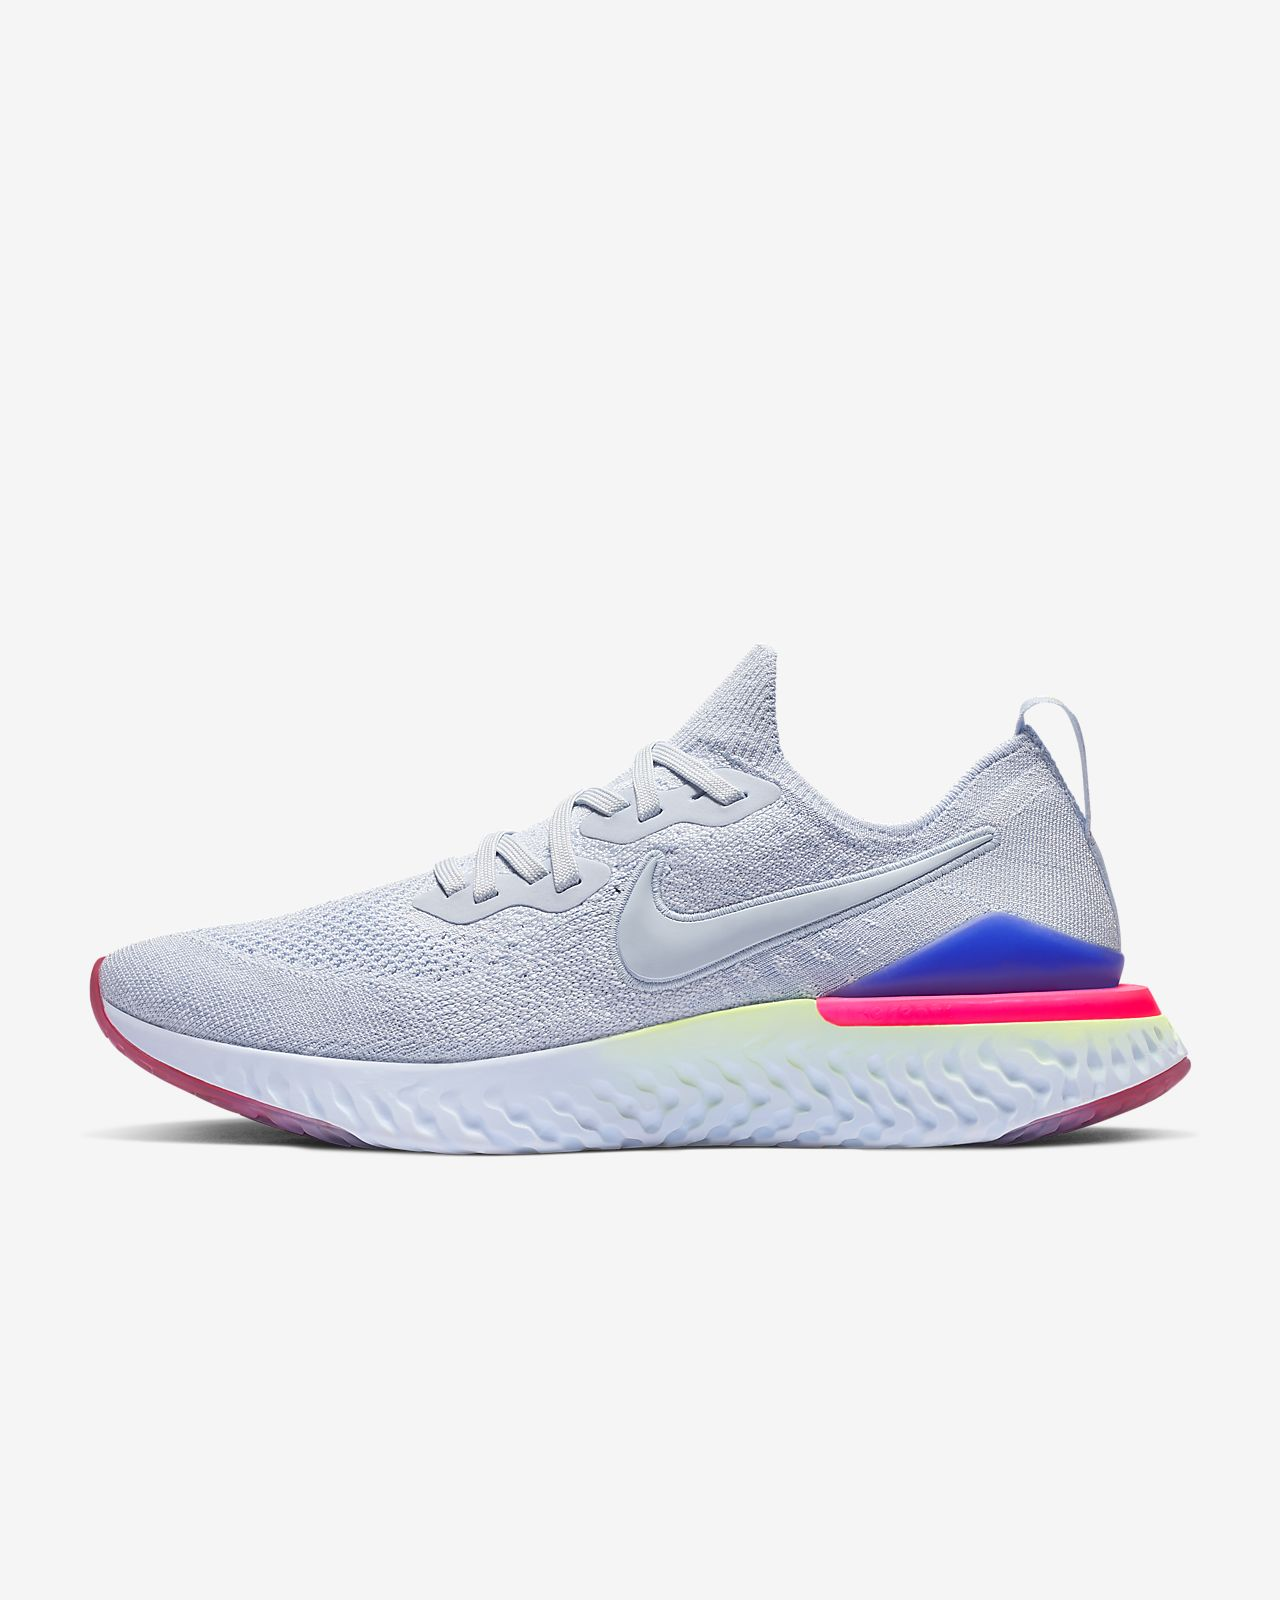 211d2a0ceb2b Nike Epic React Flyknit 2 Men s Running Shoe. Nike.com GB